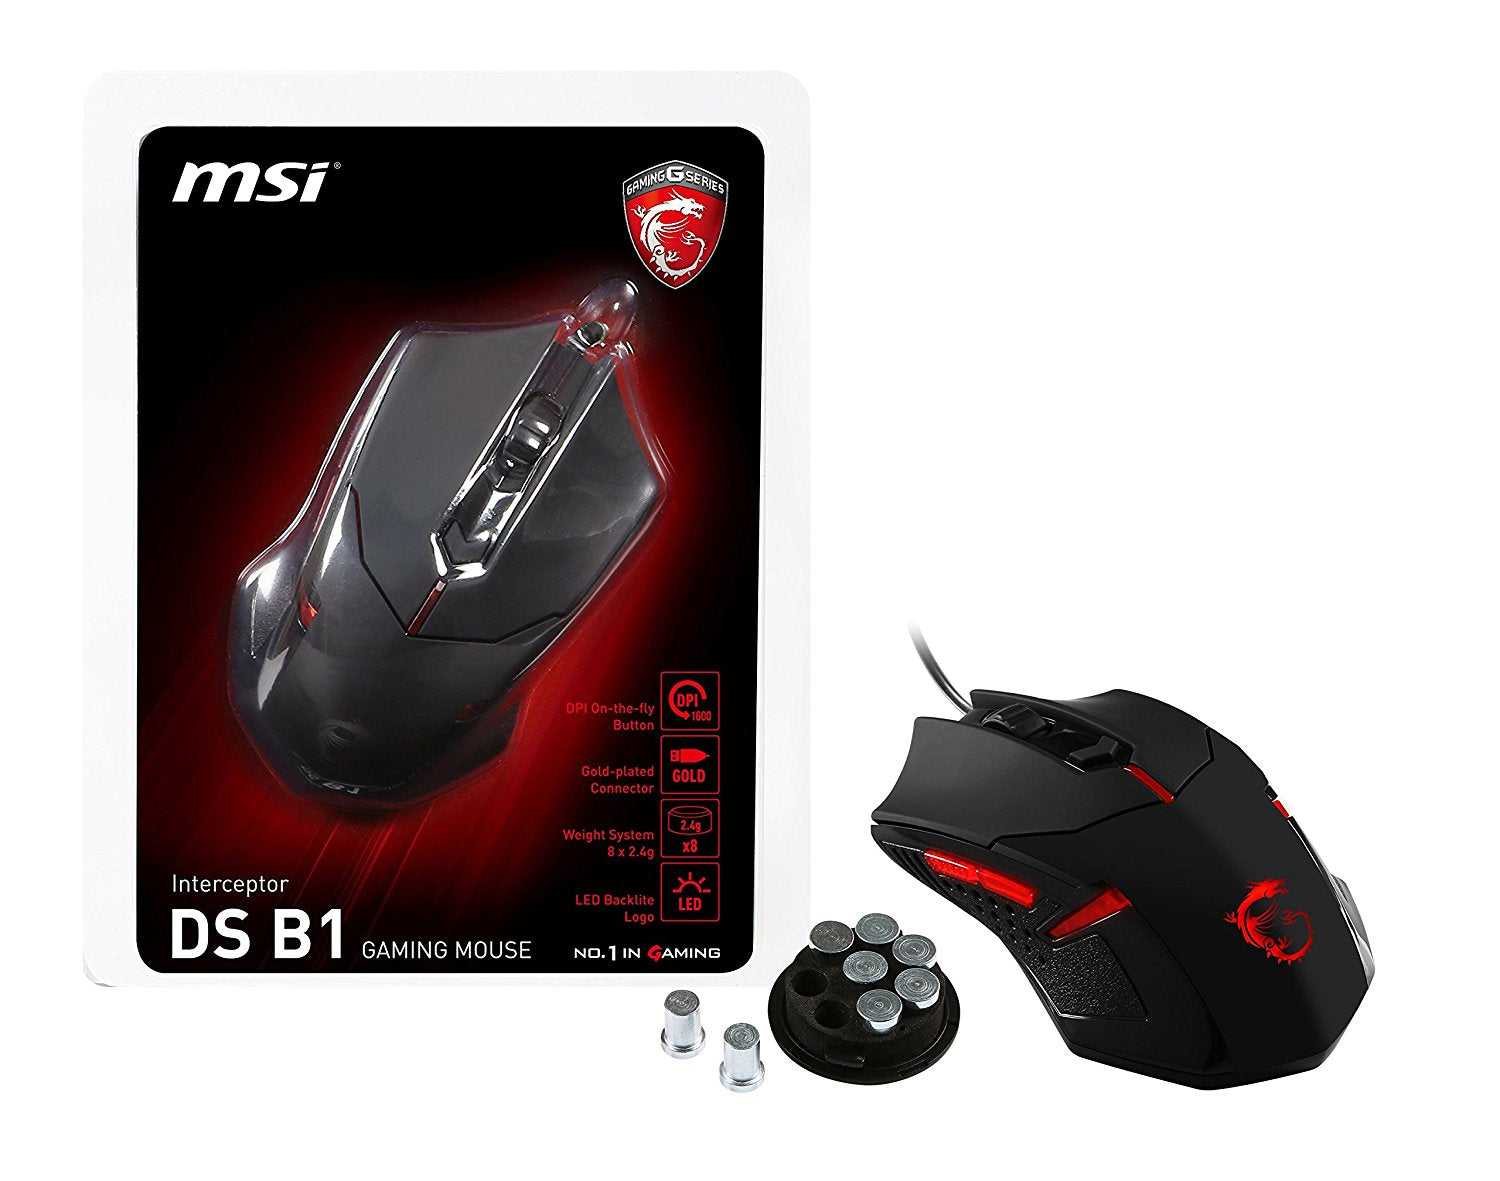 MSI Interceptor DS B1 USB Optical Gaming Mouse with Ergonomic Design and Weight System